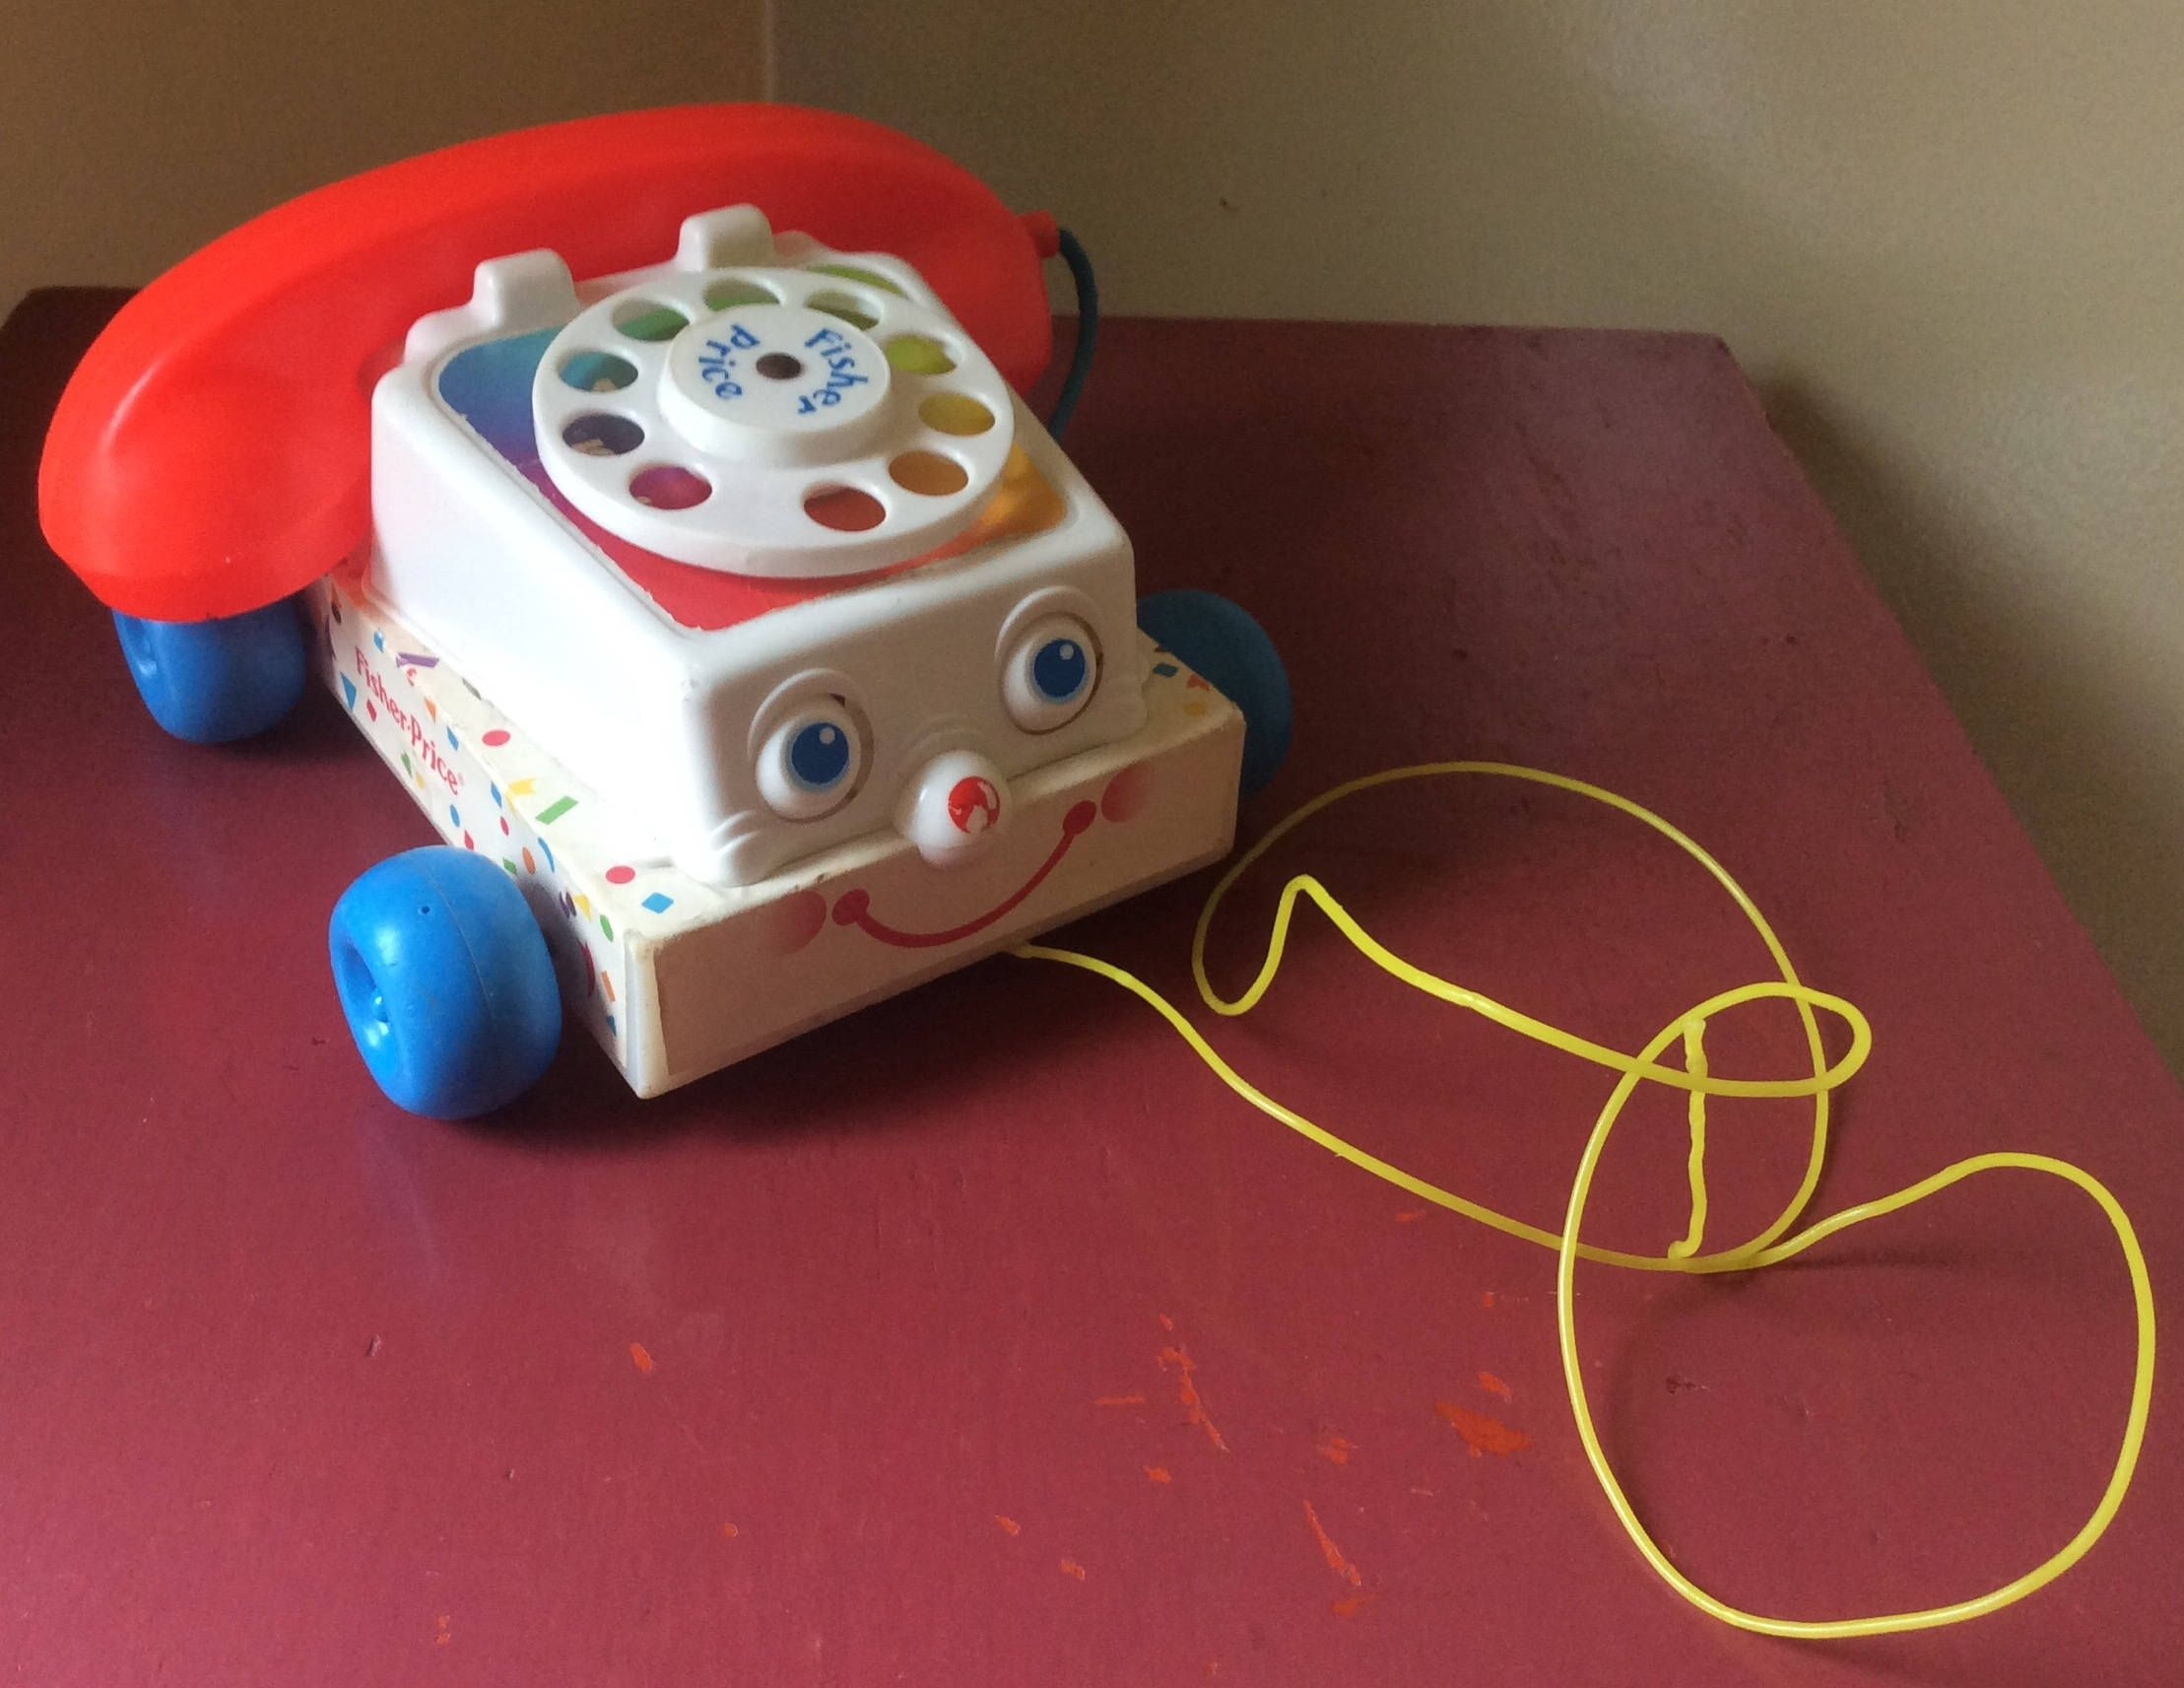 hight resolution of vintage authentic novelty fisher price retro rotary phone toy 1980s 1970s 1960s for children nostalgia pull toy telephone toy by mandemsclevercache on etsy